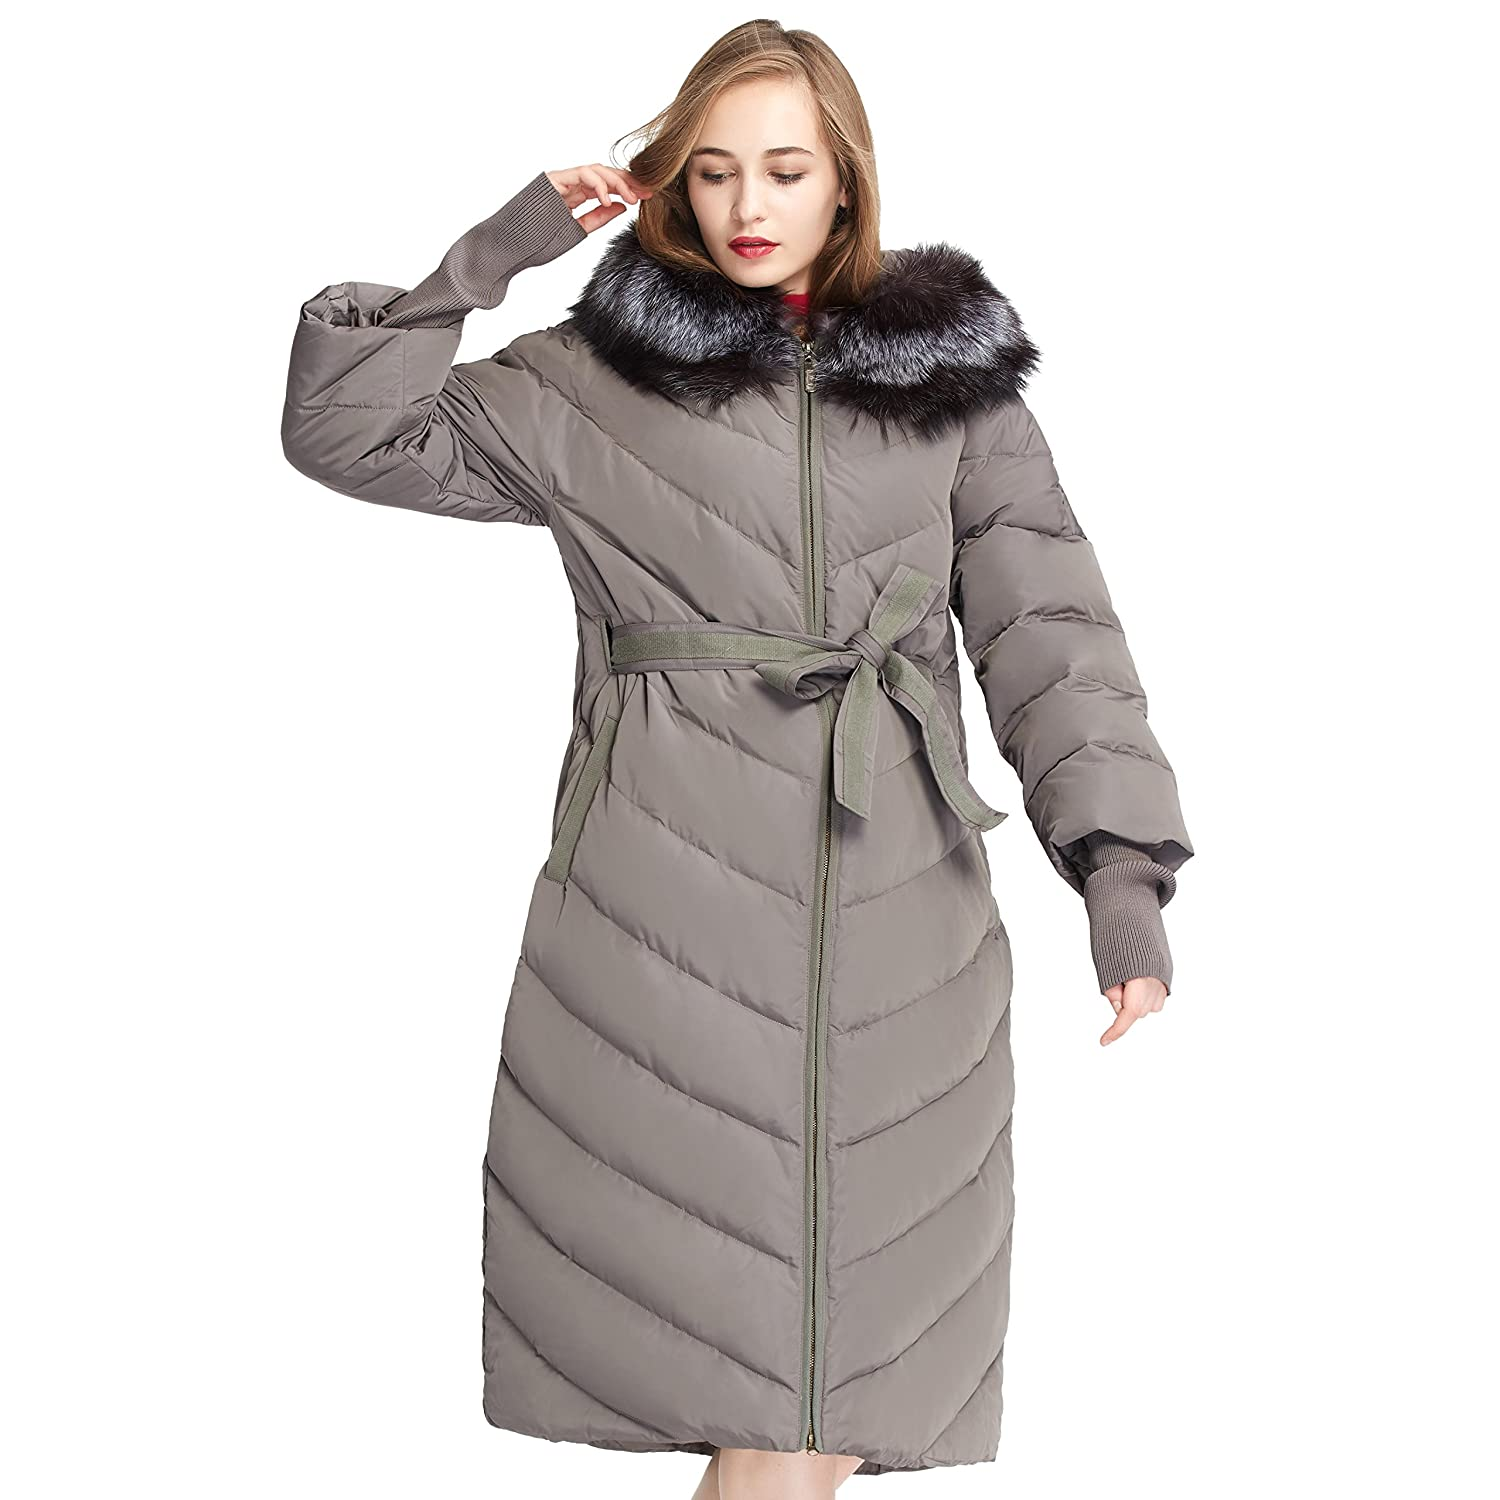 Women's Winter Extra Long Down Parka with Fox Fur Hood Jacket